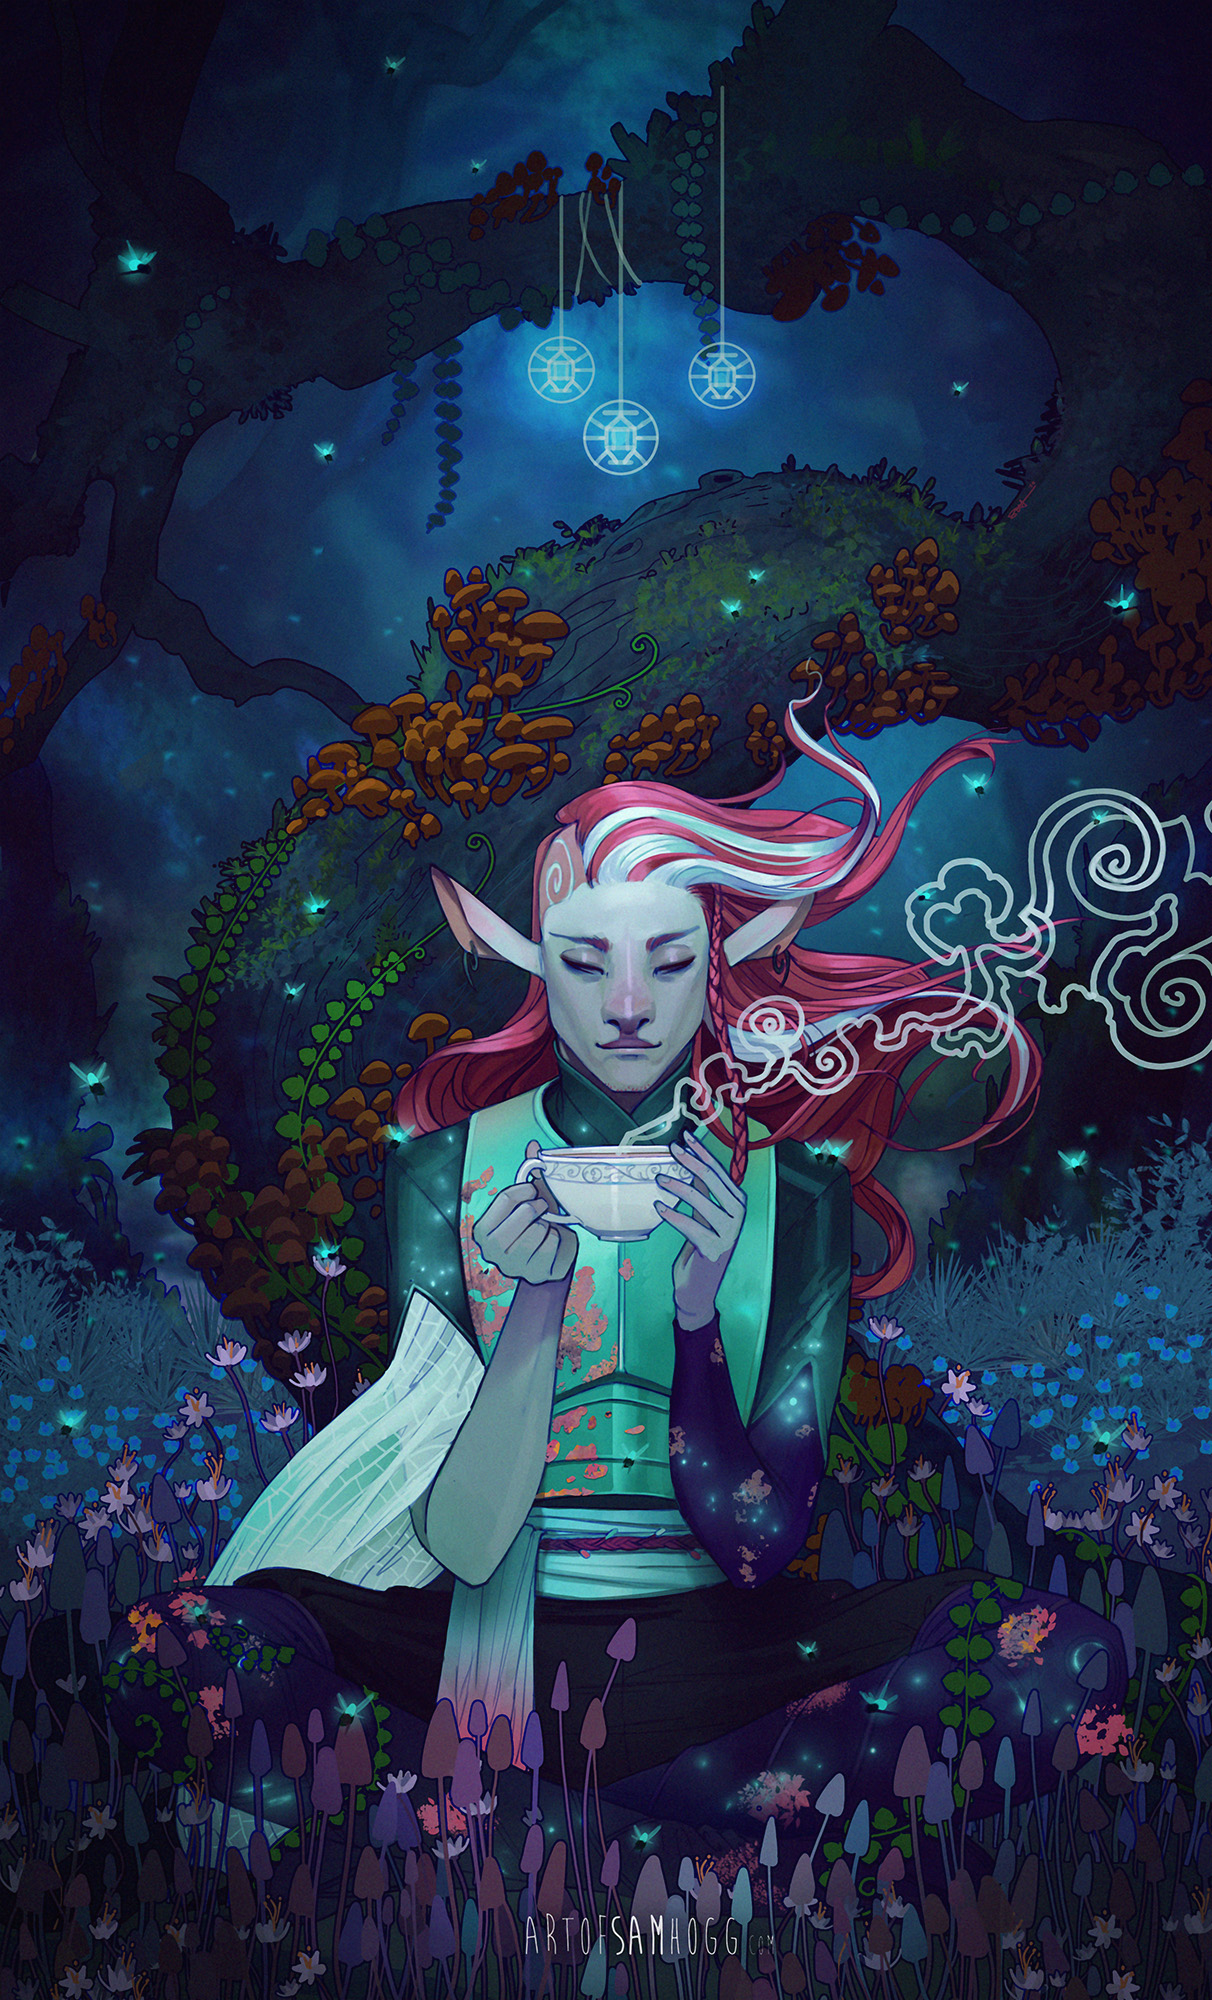 Caduceus Clay Critical Role Wiki Fandom 1:44:39 critical role 118 777 просмотров. caduceus clay critical role wiki fandom